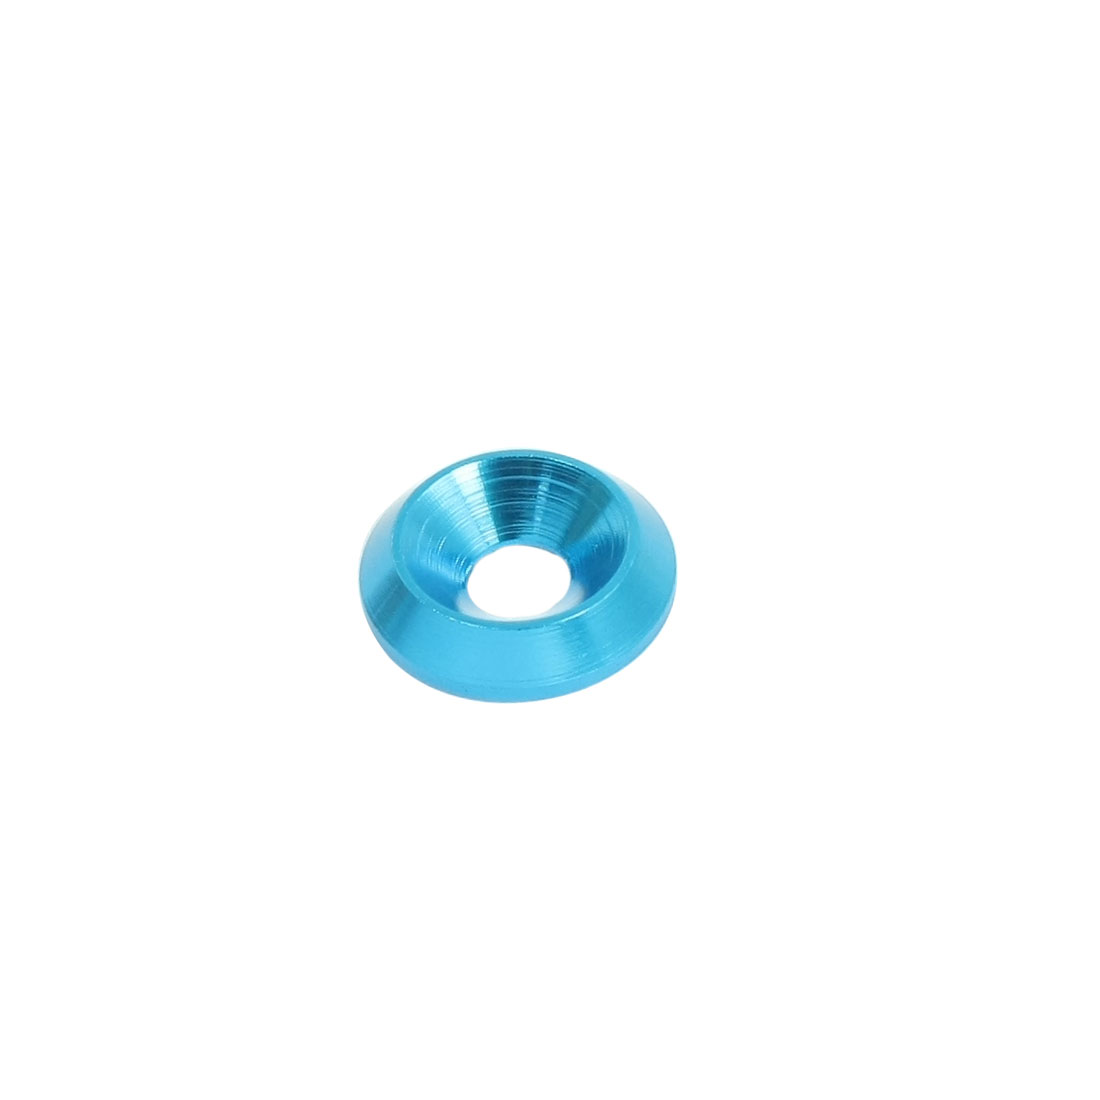 5mm x 16mm x 3.5mm Blue Aluminium Alloy Wheel Spacer Washer Adaptor for RC Model